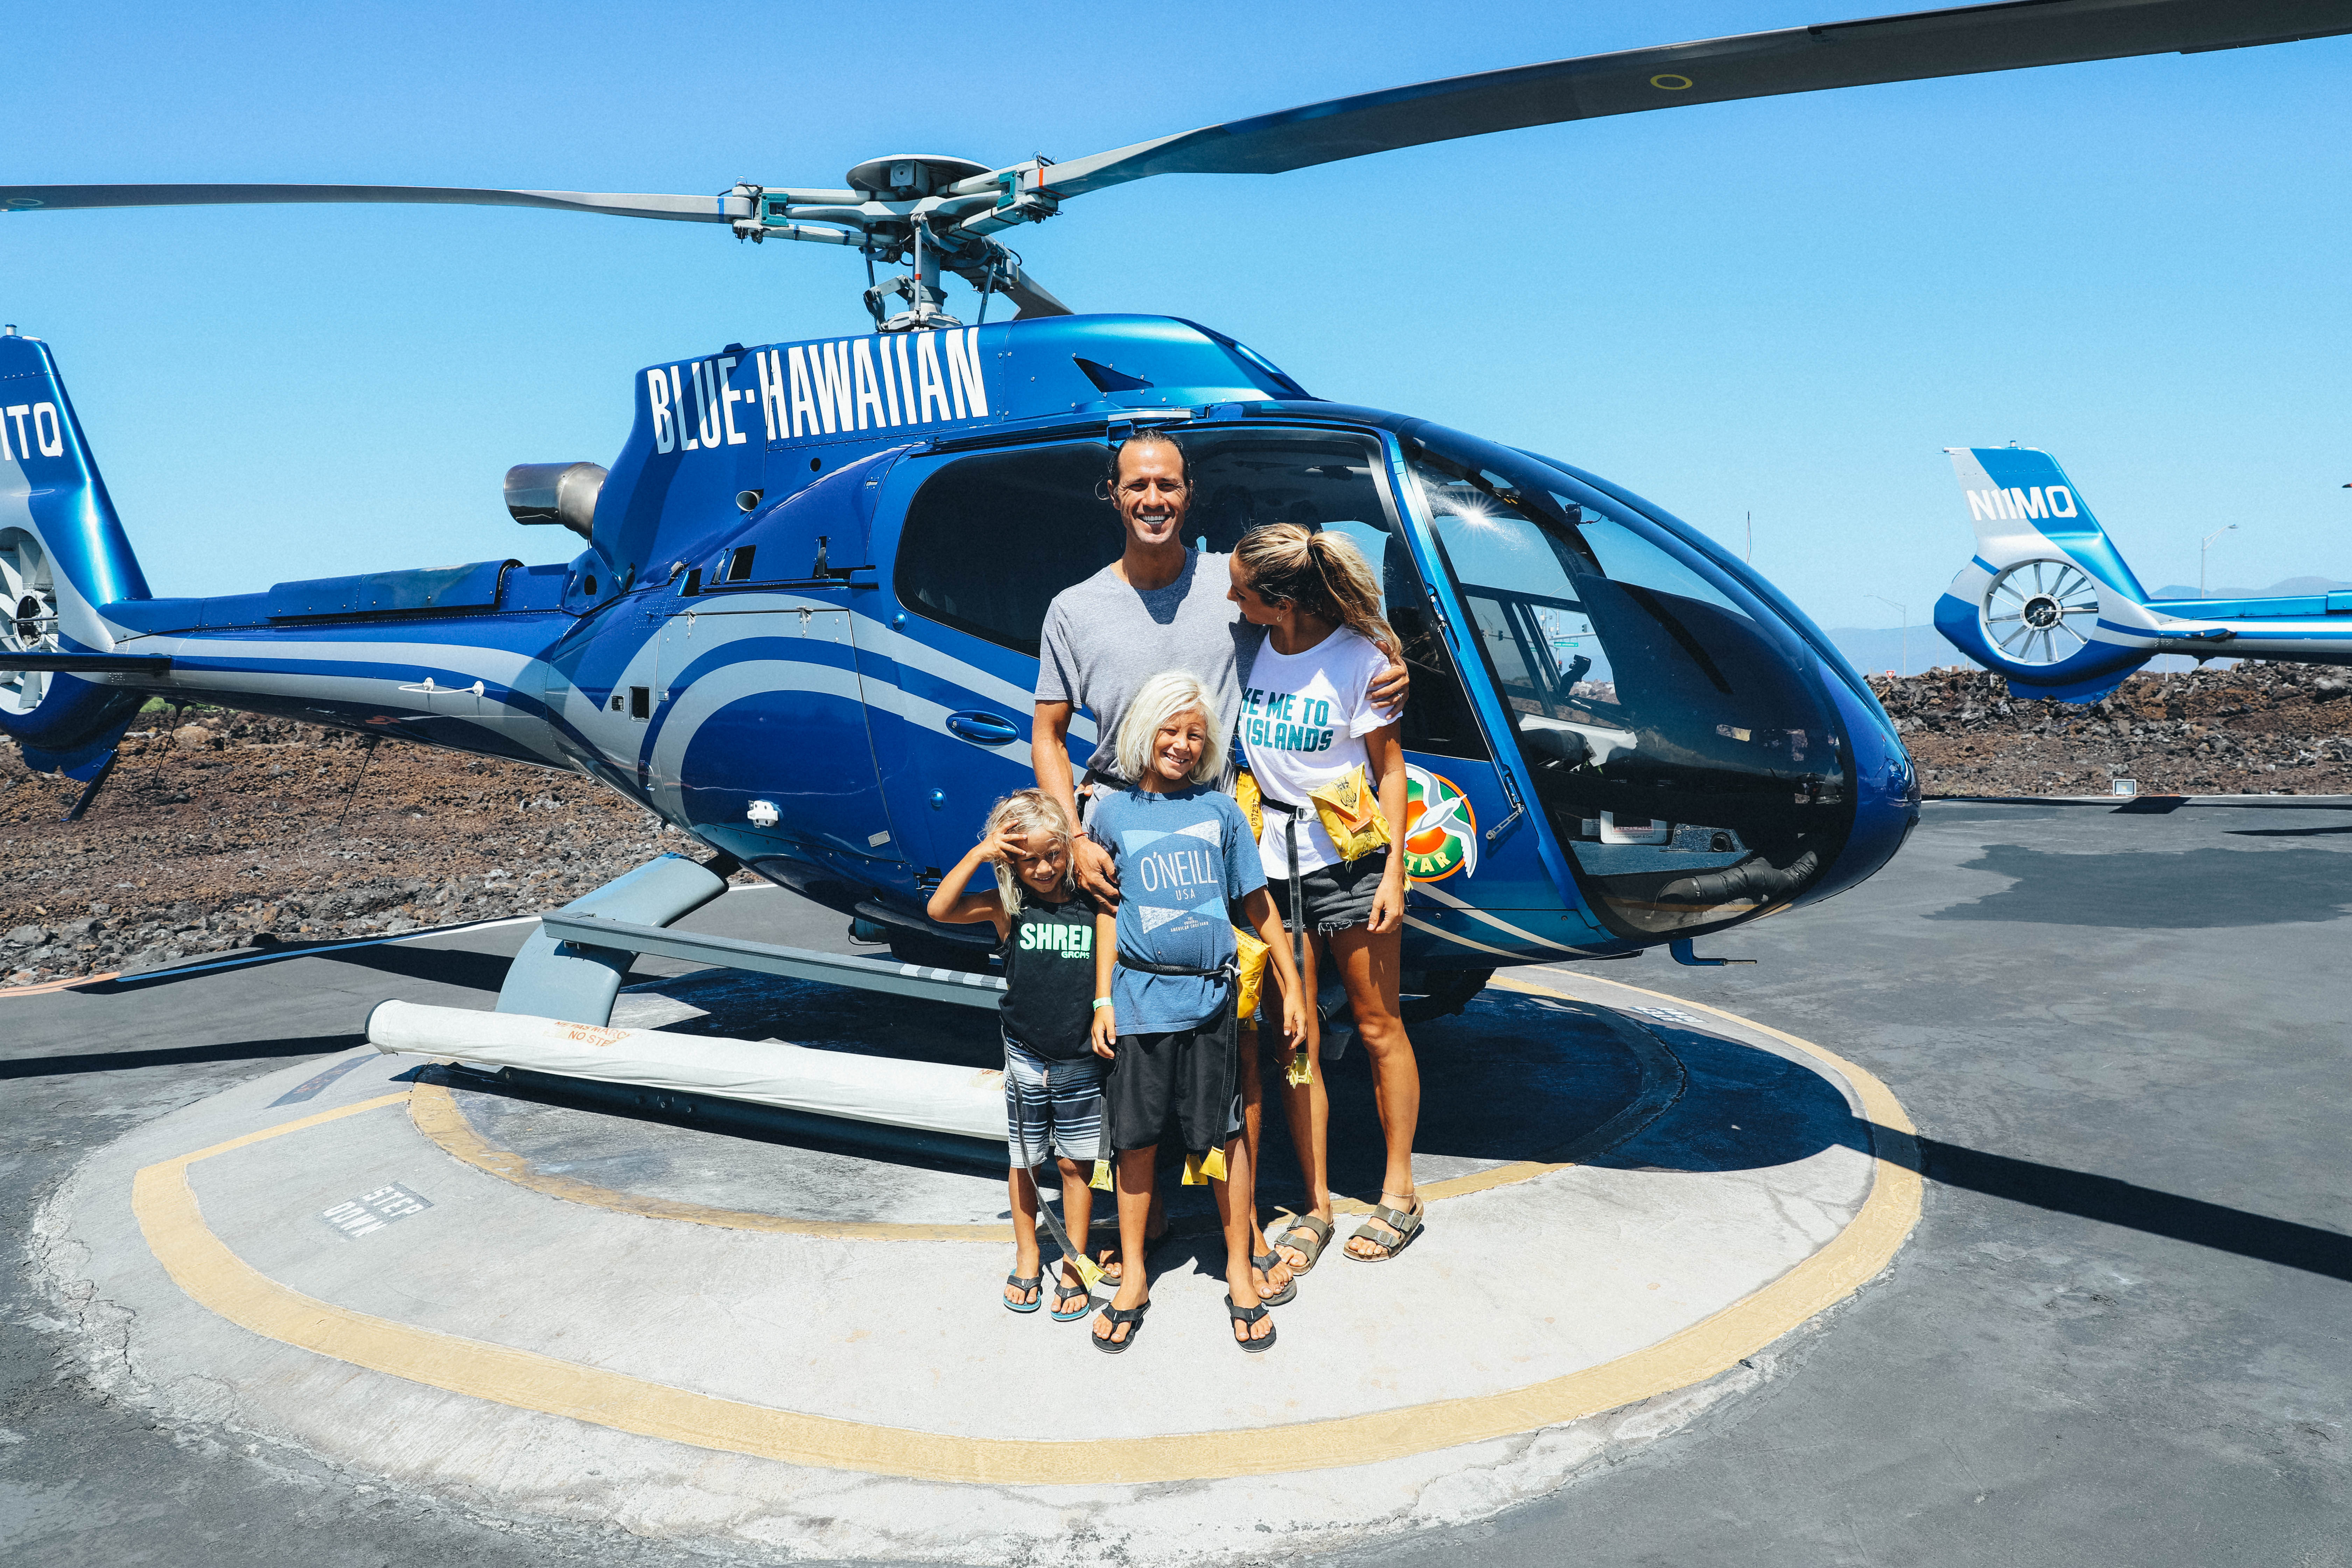 andy and family in front of helicopter for tour